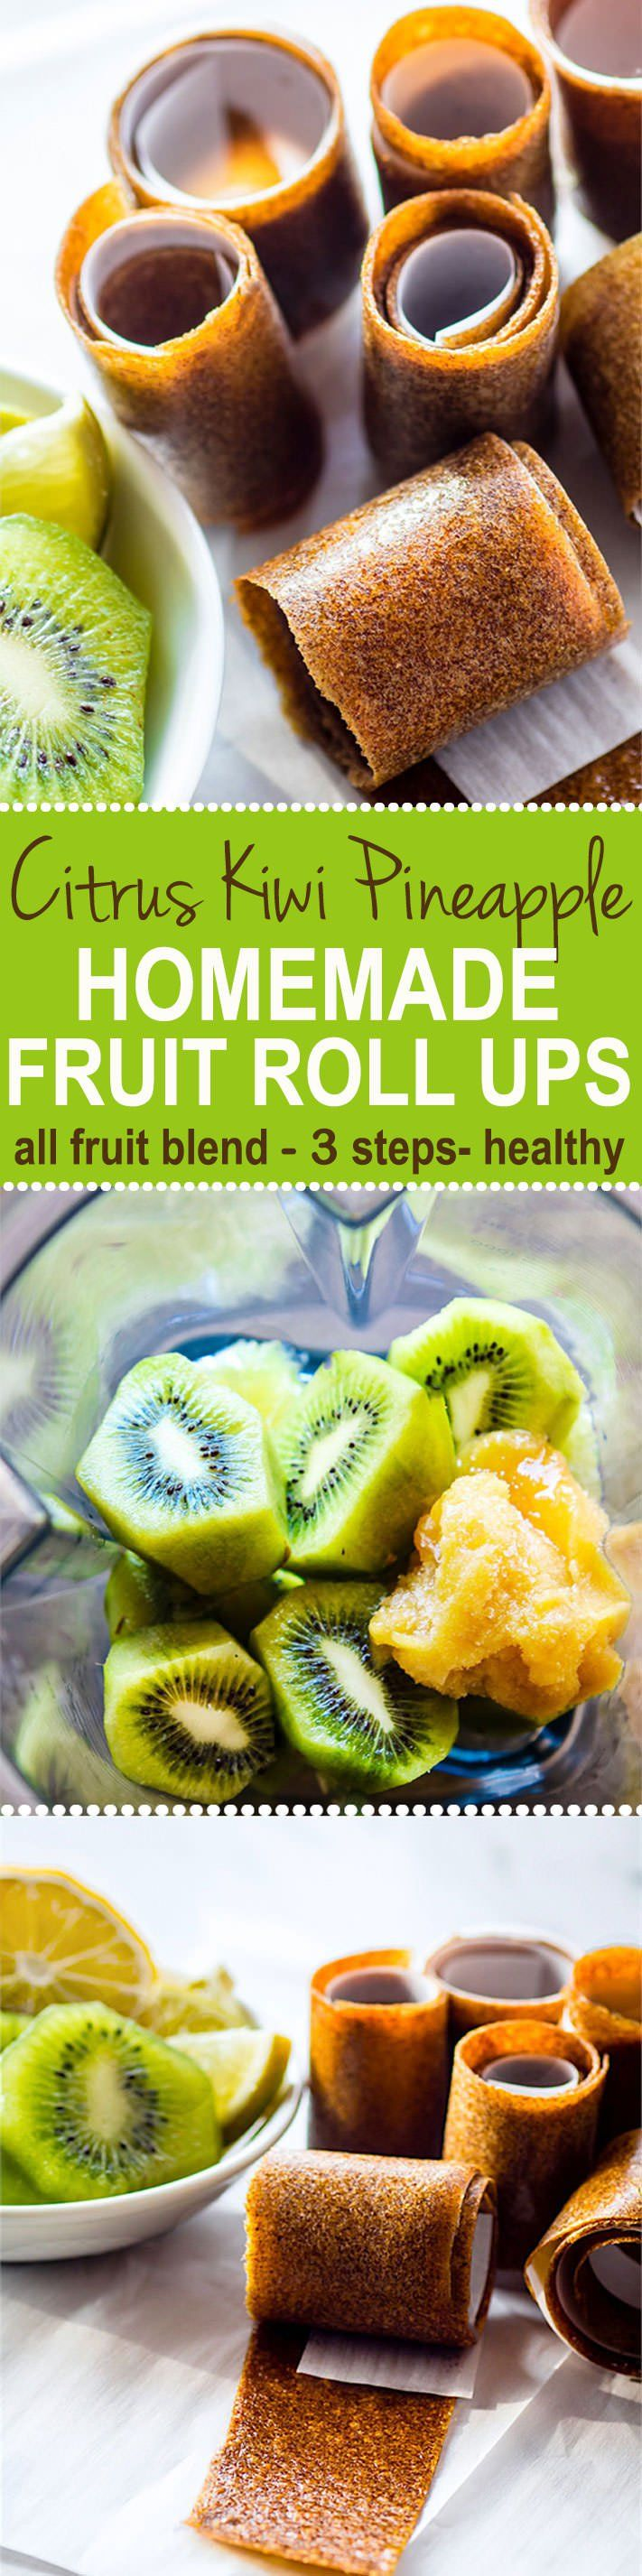 Easy Citrus Kiwi Pineapple Homemade Fruit Roll Ups made in the Vitamix!